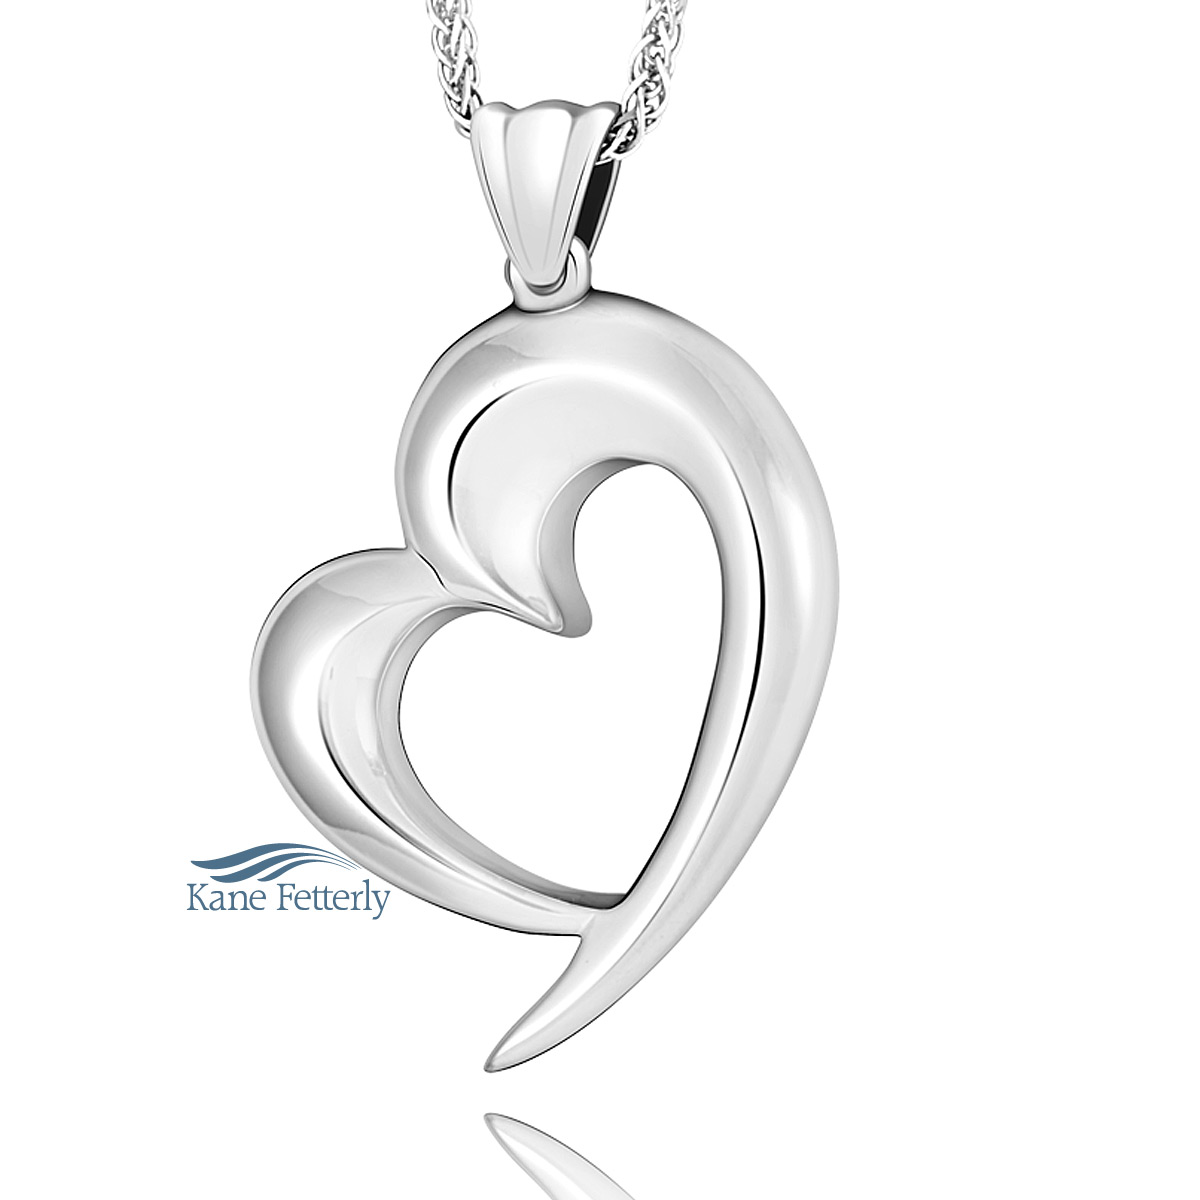 J0217 Heart pendant in sterling silver